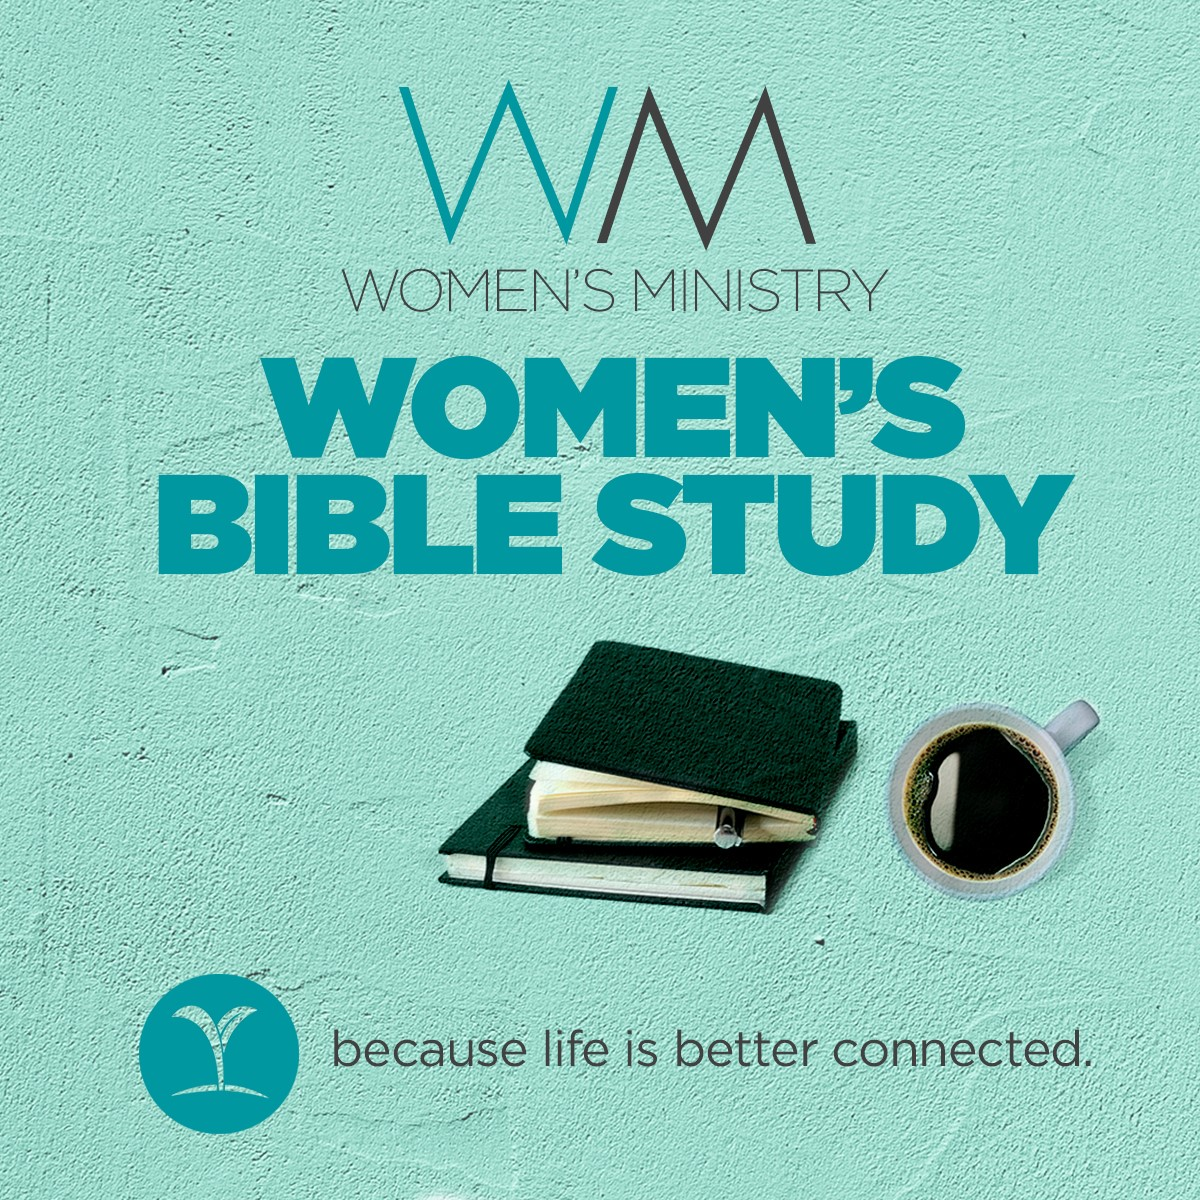 (Postponed) Women's Bible Study - I Said This, You Heard That (Wednesday)